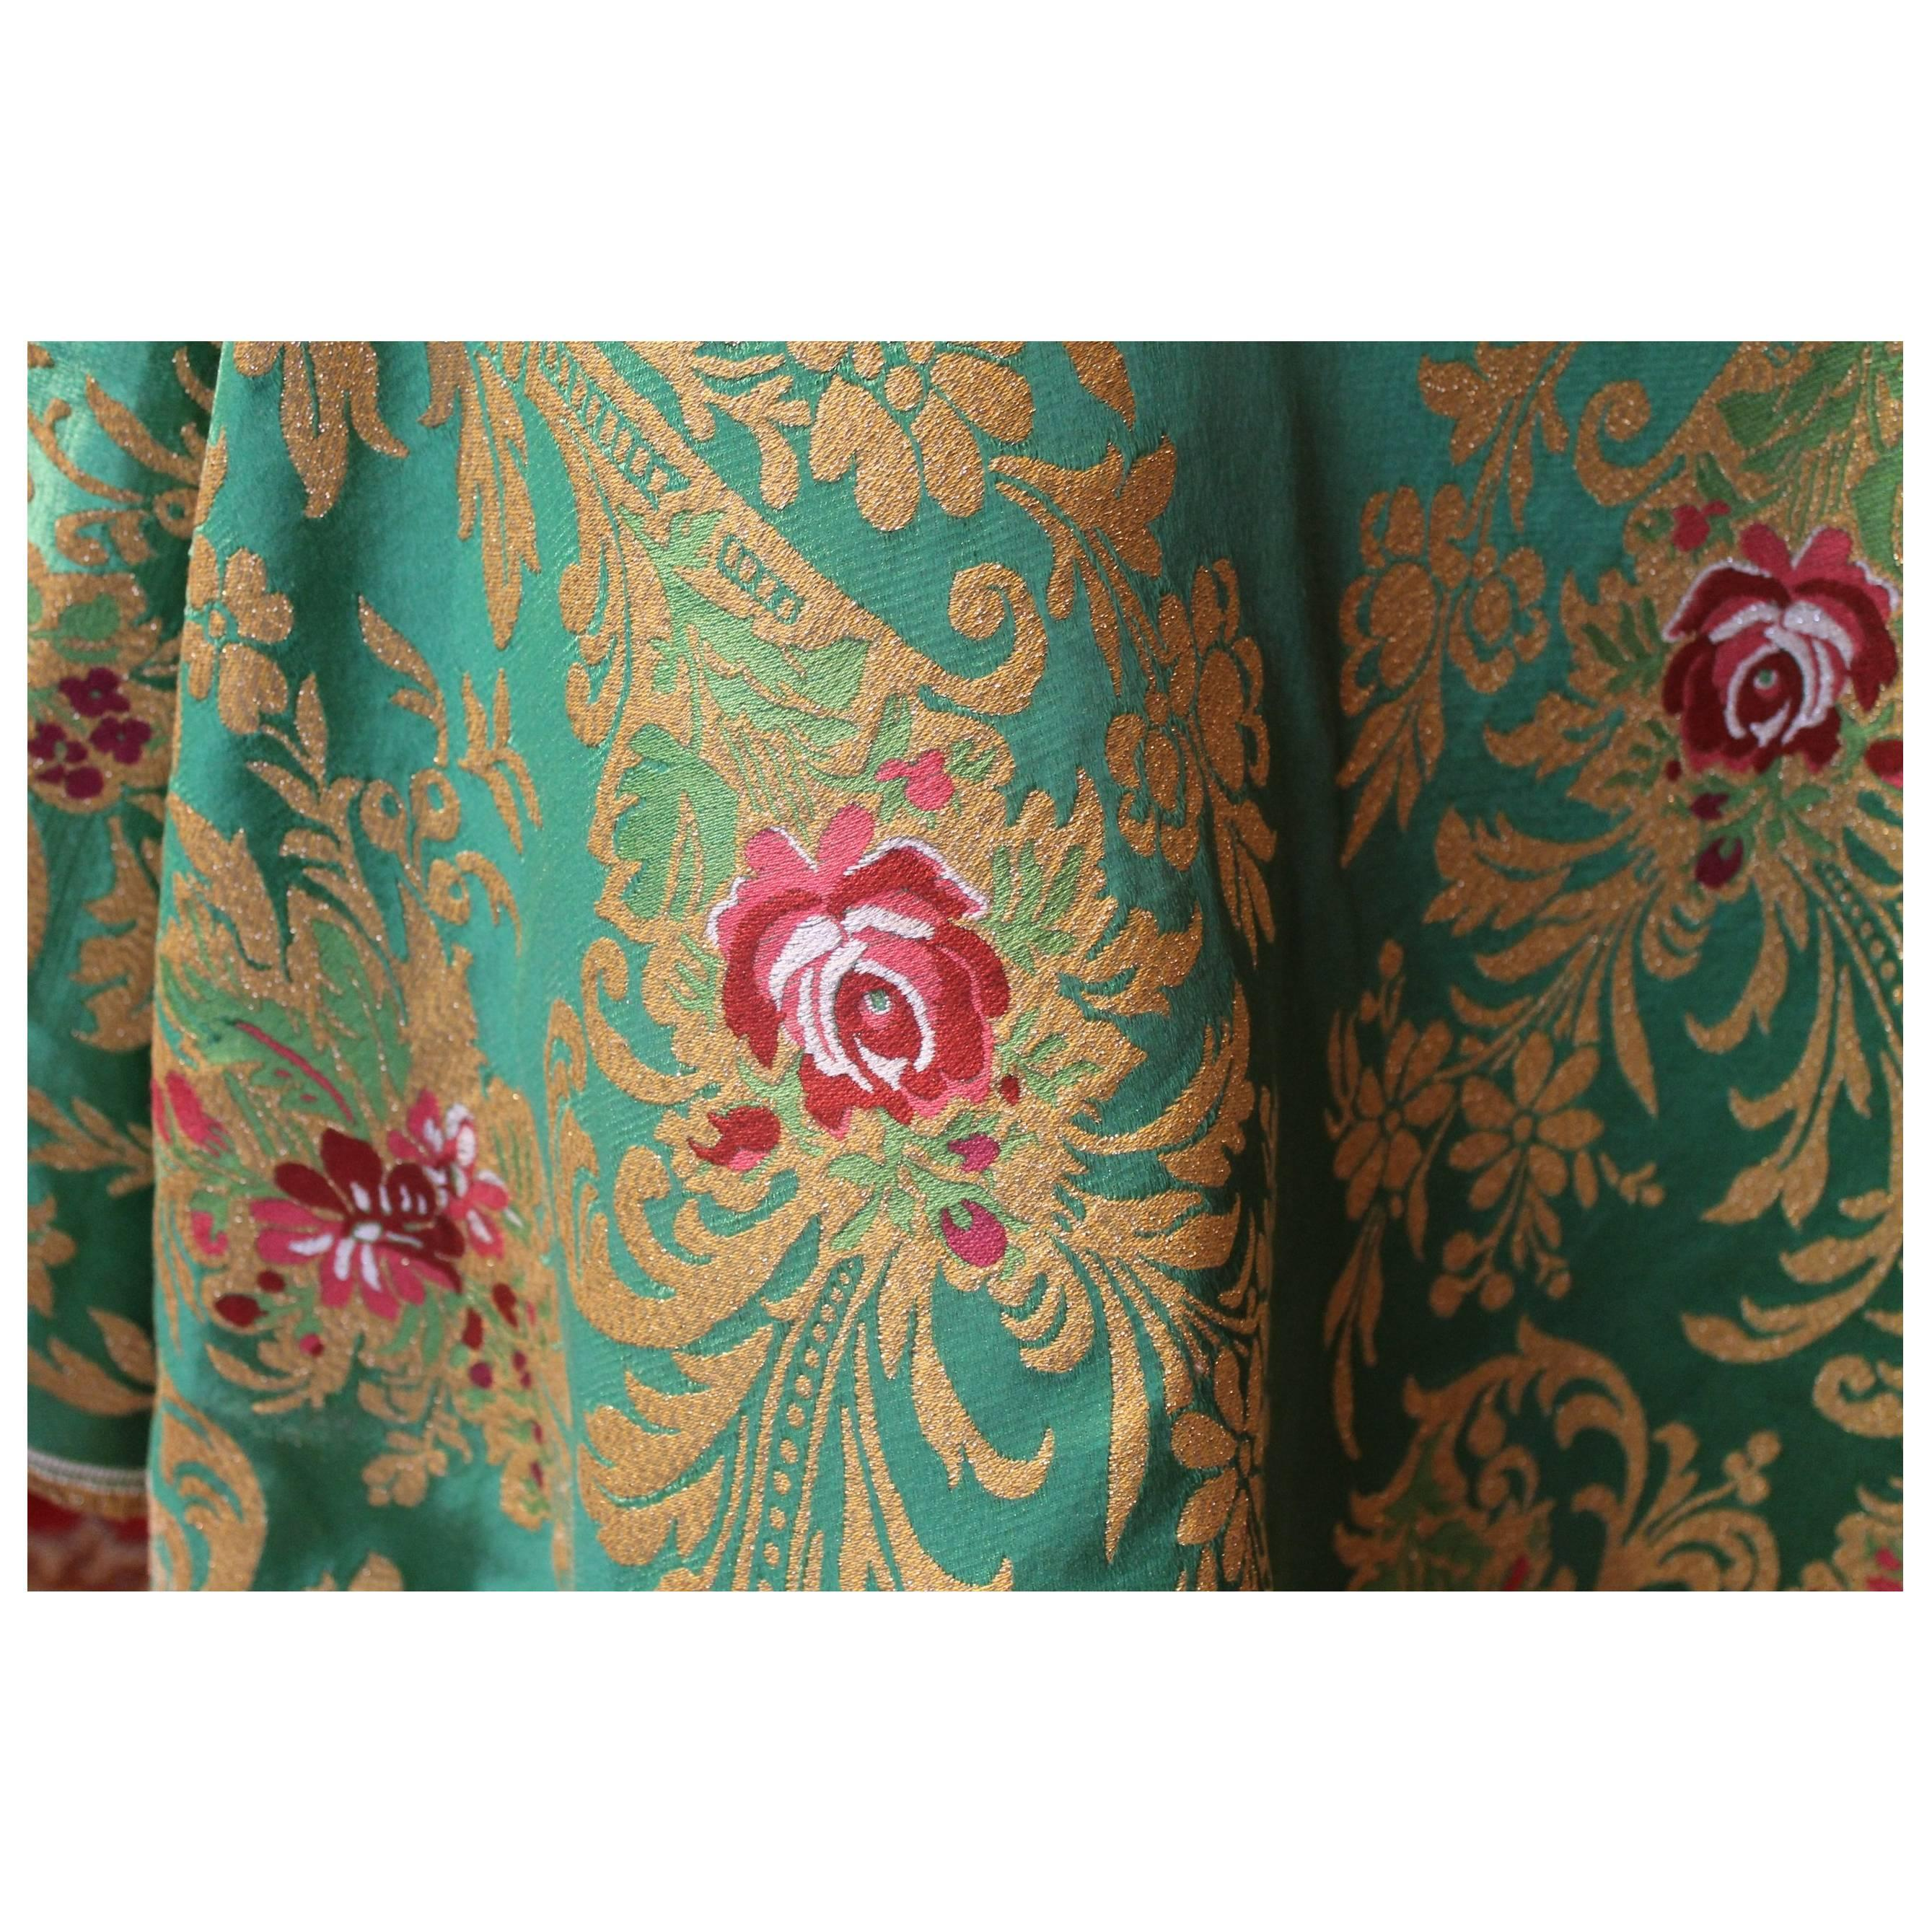 Italian Green Silk Blend Brocade Fabric with Red Roses and Gold Floral Patterns